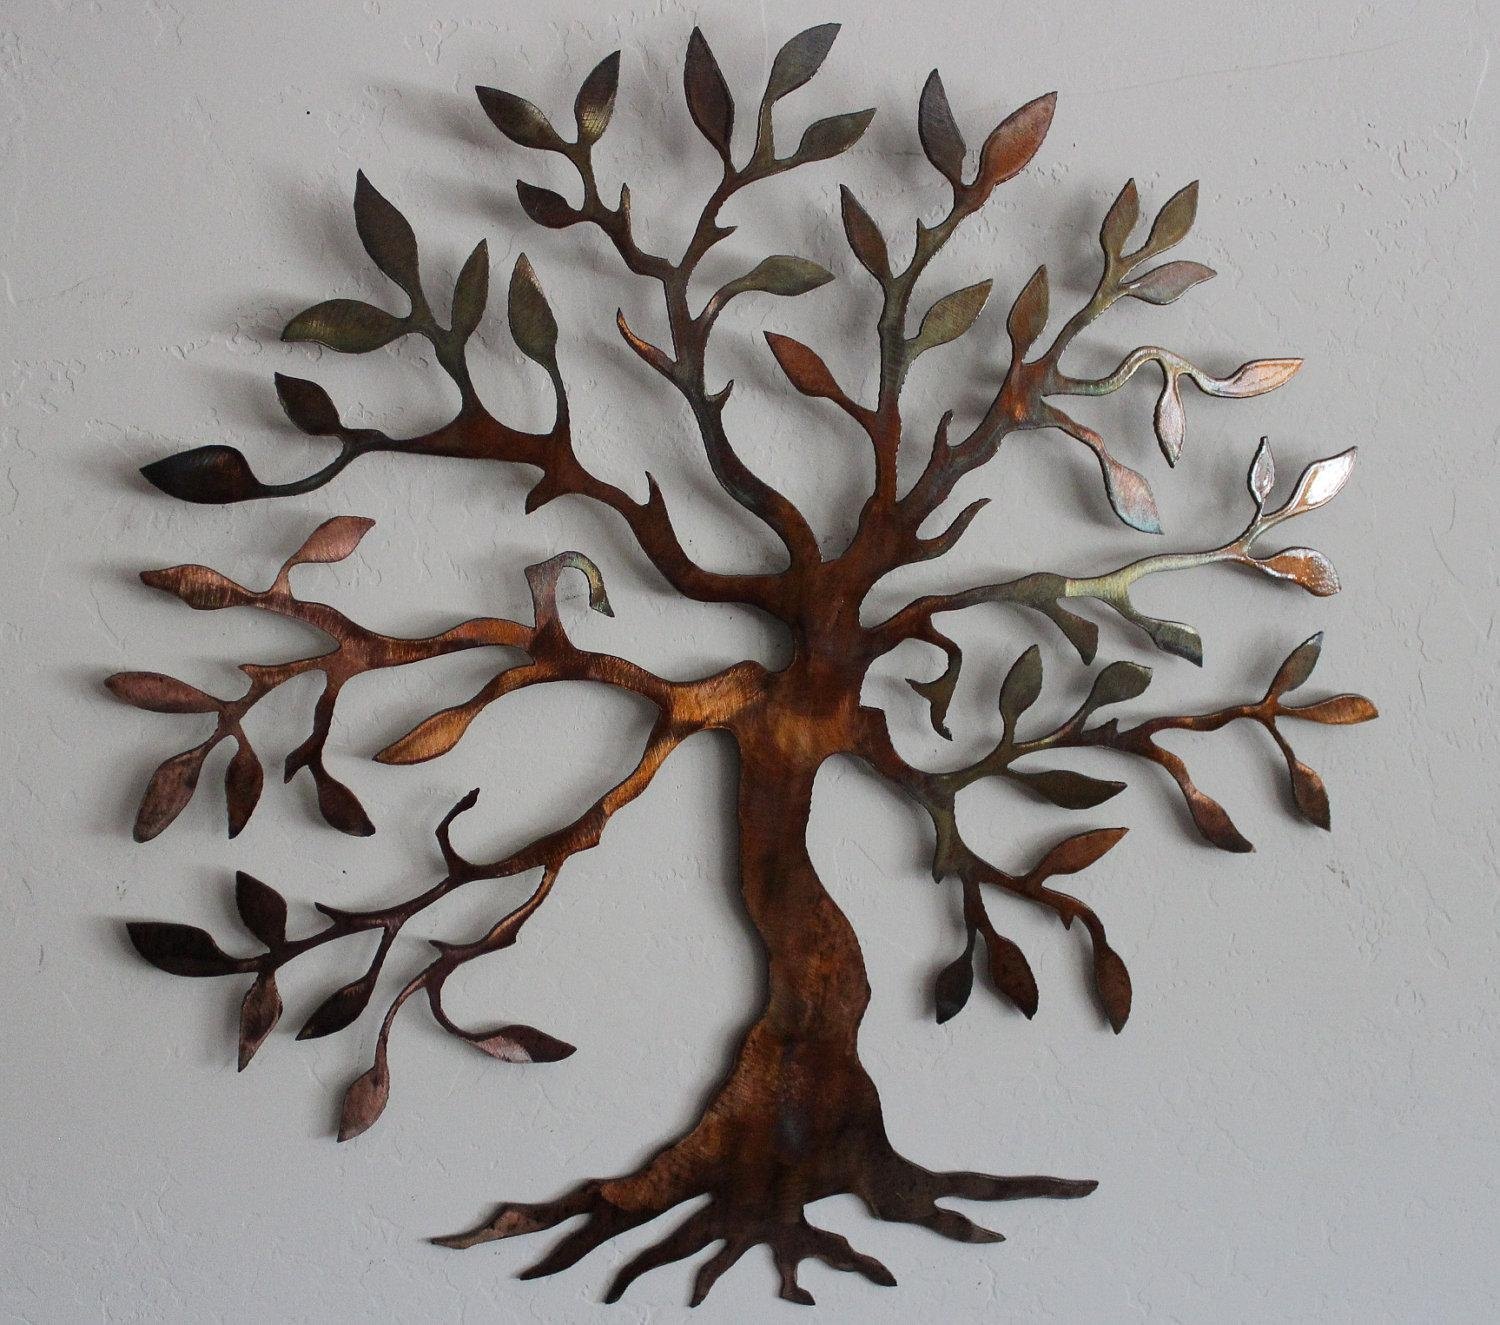 Metal Wall Art Decor And Sculptures Ideas | Jeffsbakery Basement Throughout Tree Wall Art Sculpture (View 20 of 20)